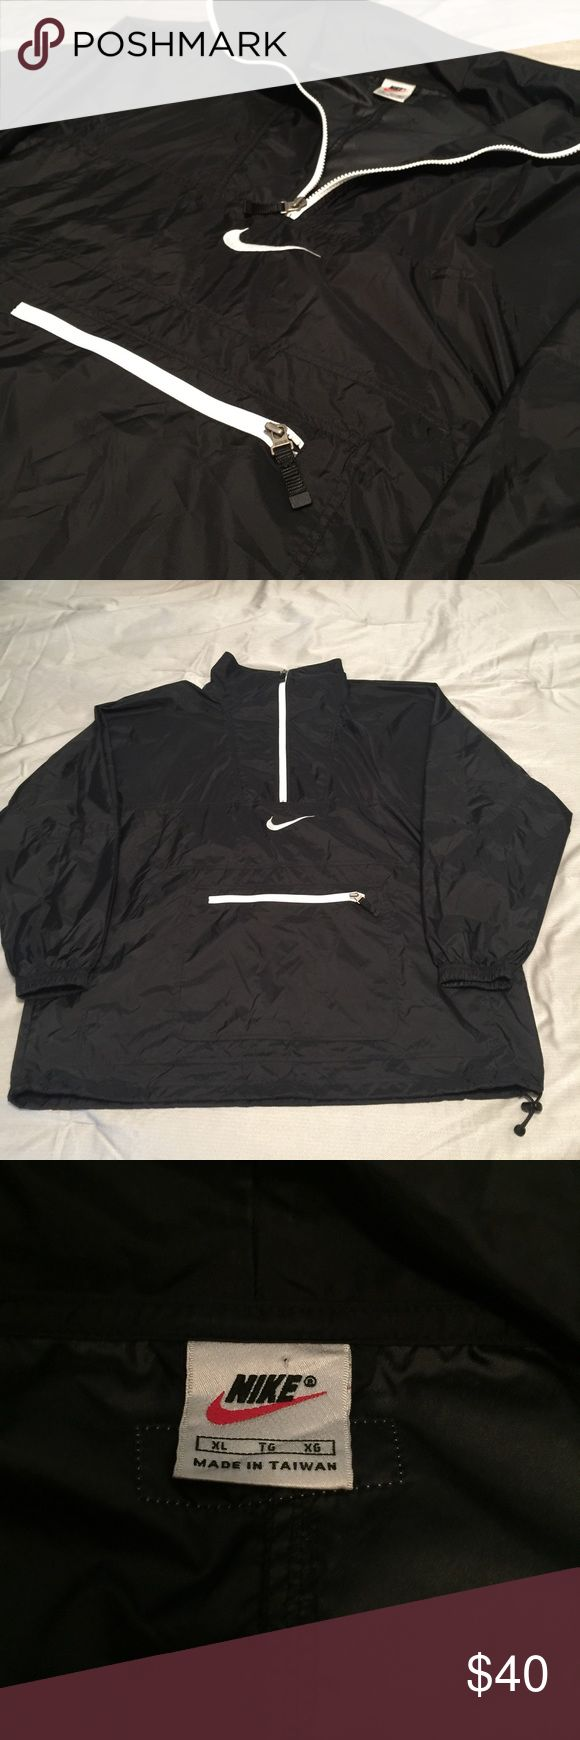 Vintage Nike Windbreaker An awesome black/white Vintage Nike Windbreaker. Nike Jackets & Coats Windbreakers